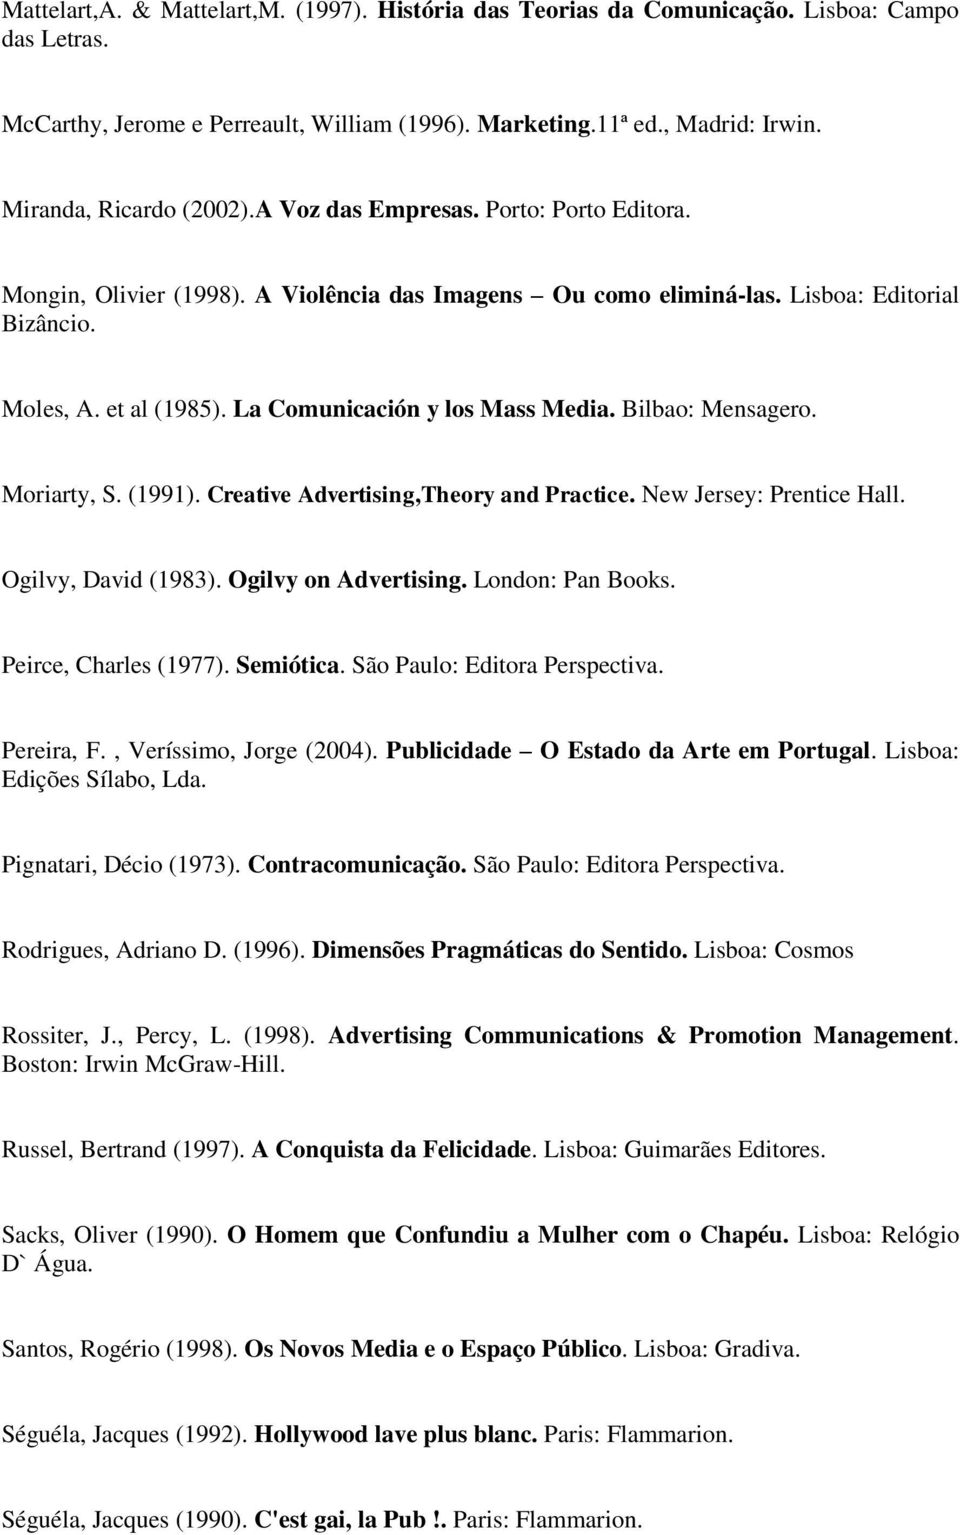 La Comunicación y los Mass Media. Bilbao: Mensagero. Moriarty, S. (1991). Creative Advertising,Theory and Practice. New Jersey: Prentice Hall. Ogilvy, David (1983). Ogilvy on Advertising.